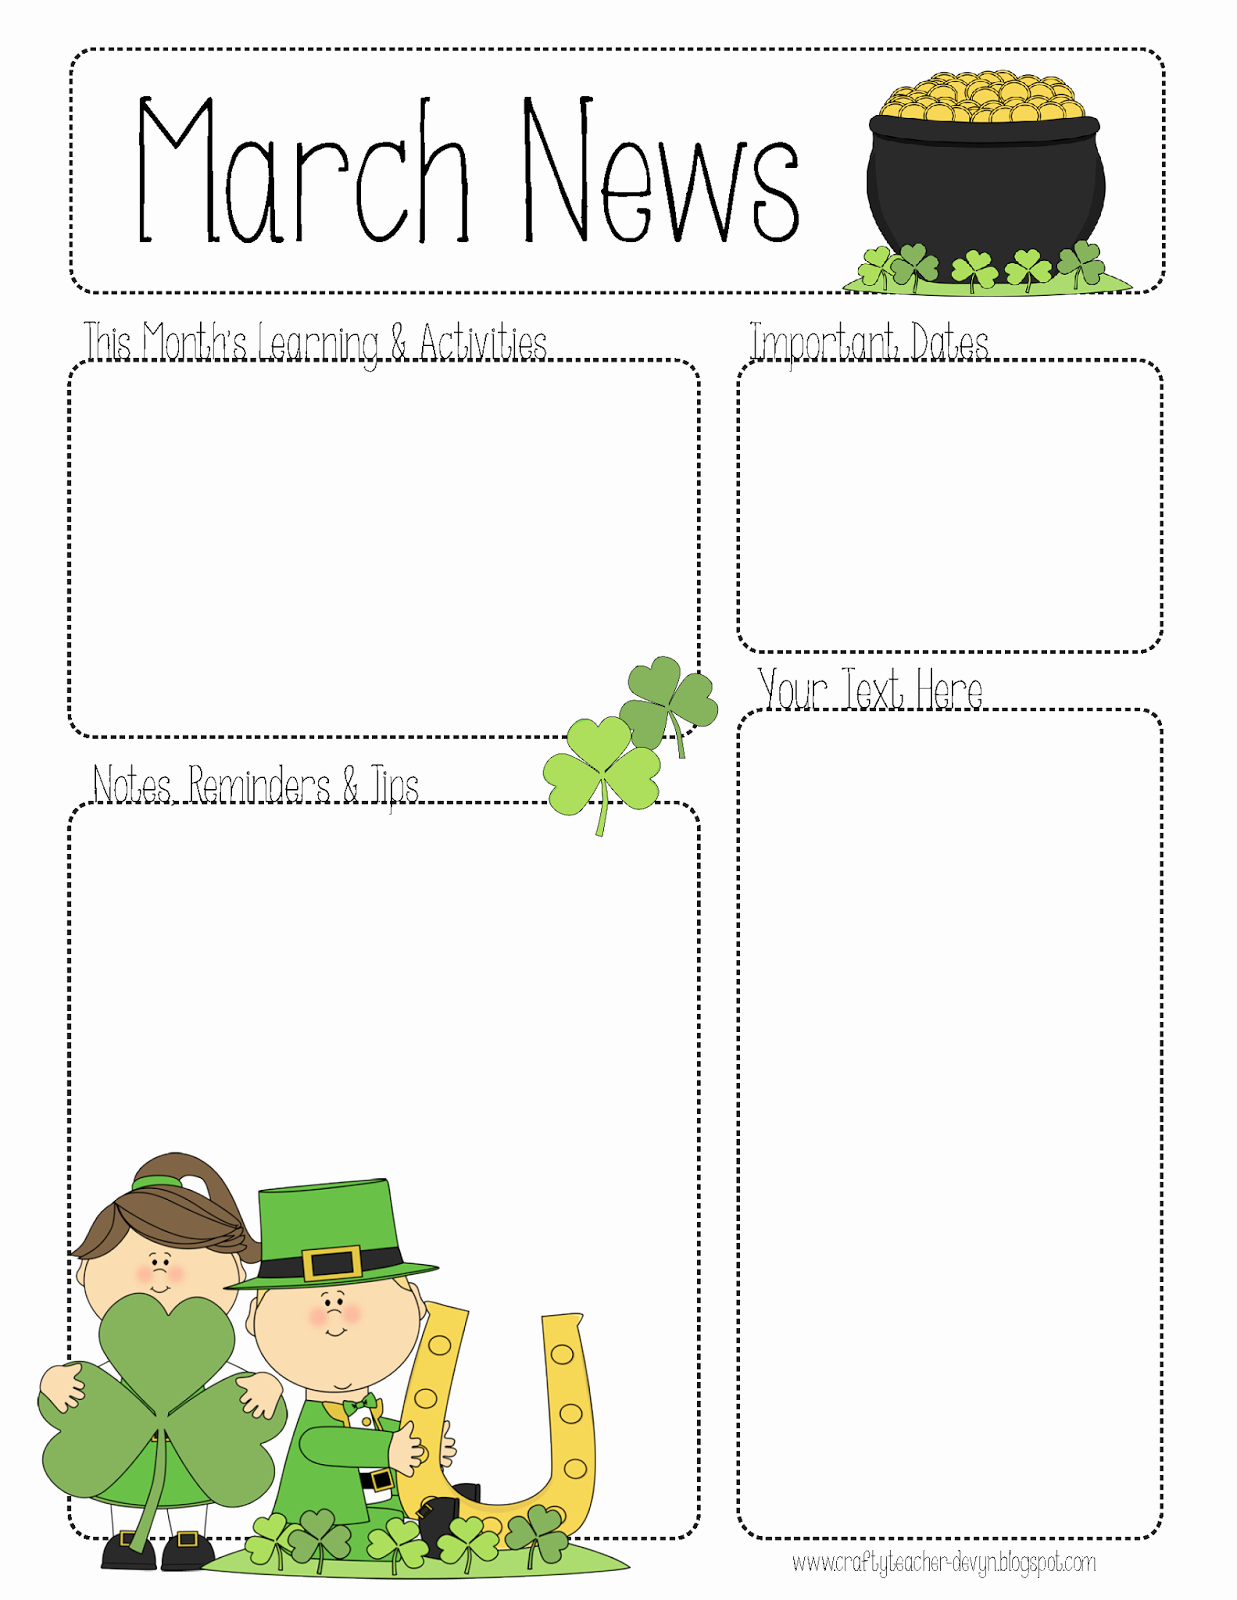 School Newsletter Template Free Inspirational March Newsletter Little Leaders Pinterest